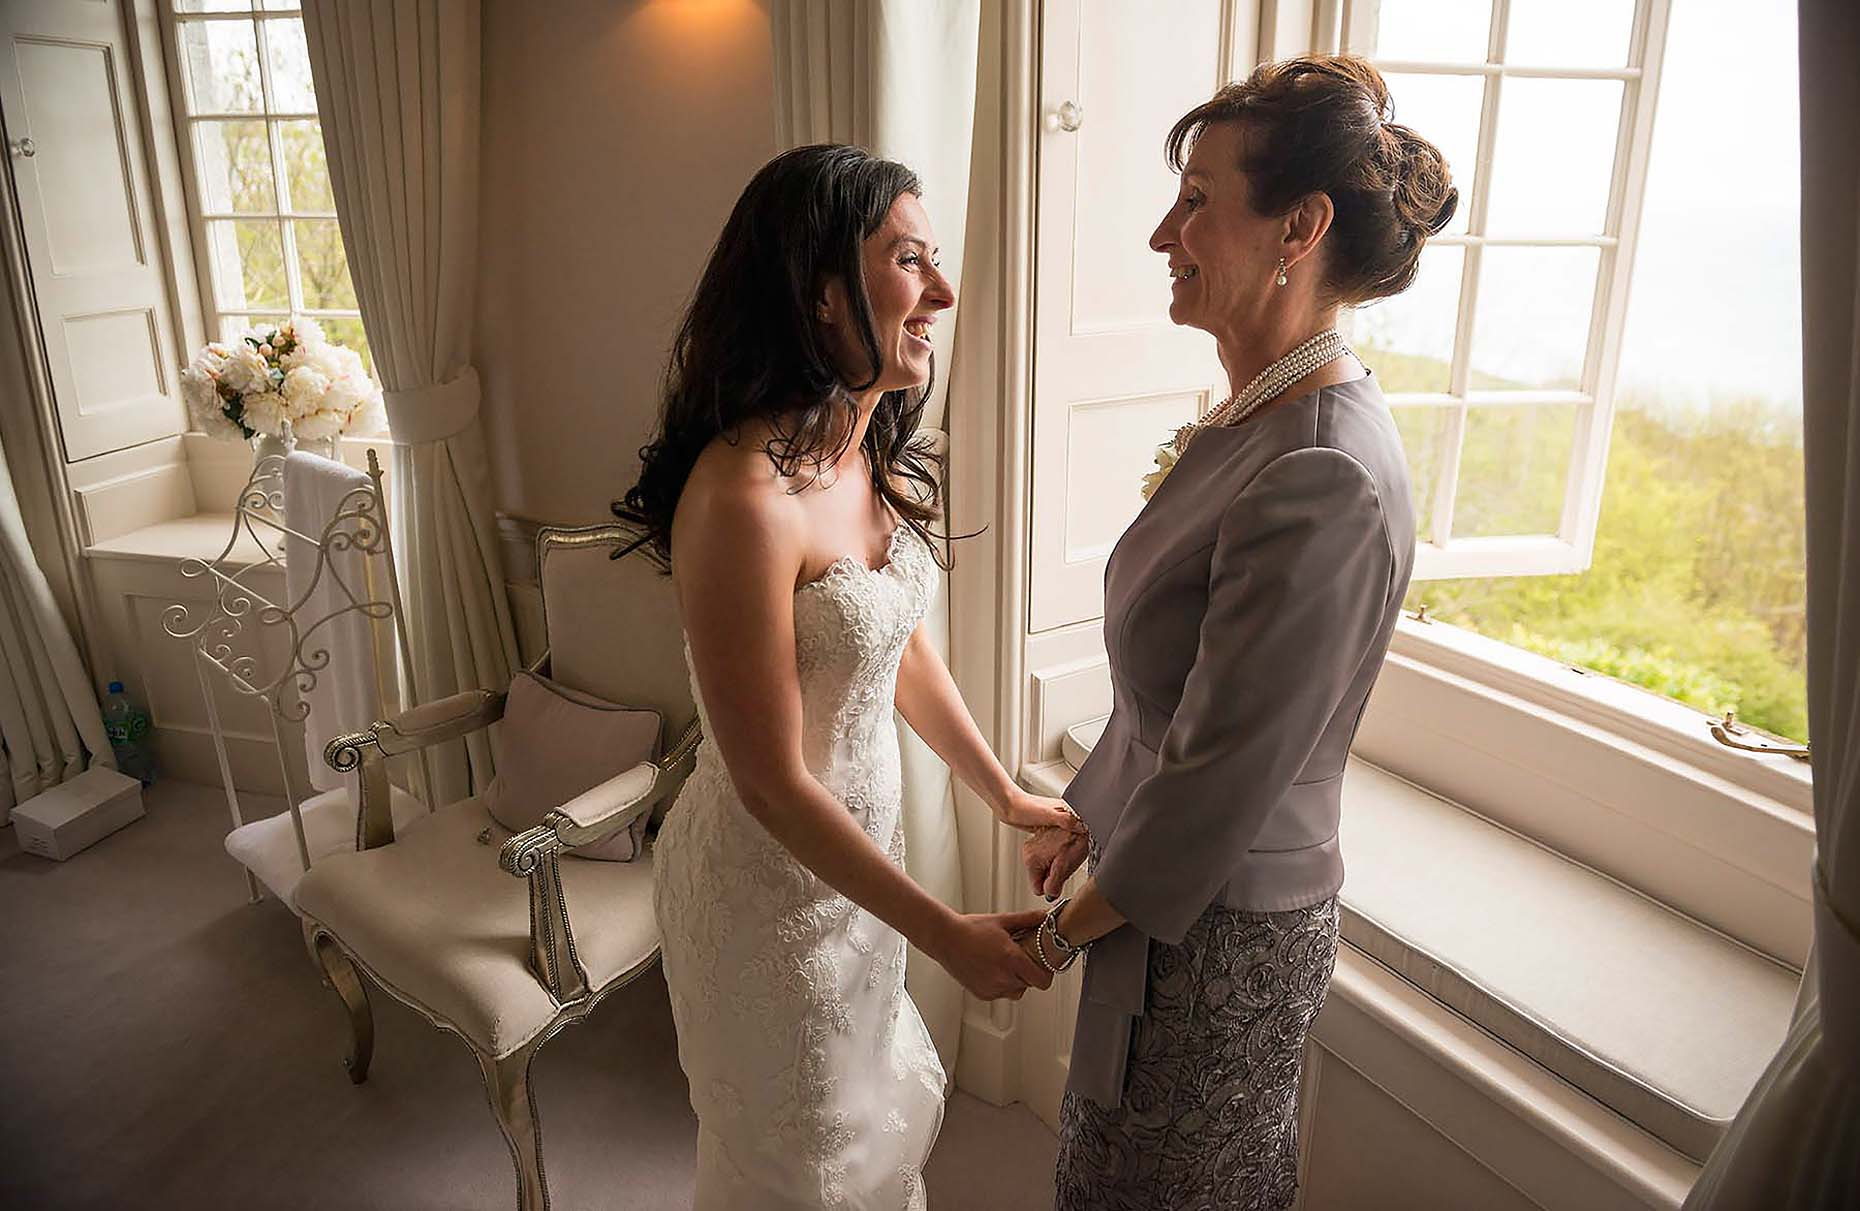 bride-and-mother-wedding-day-pennsylvania-castle-dorset-photography-14